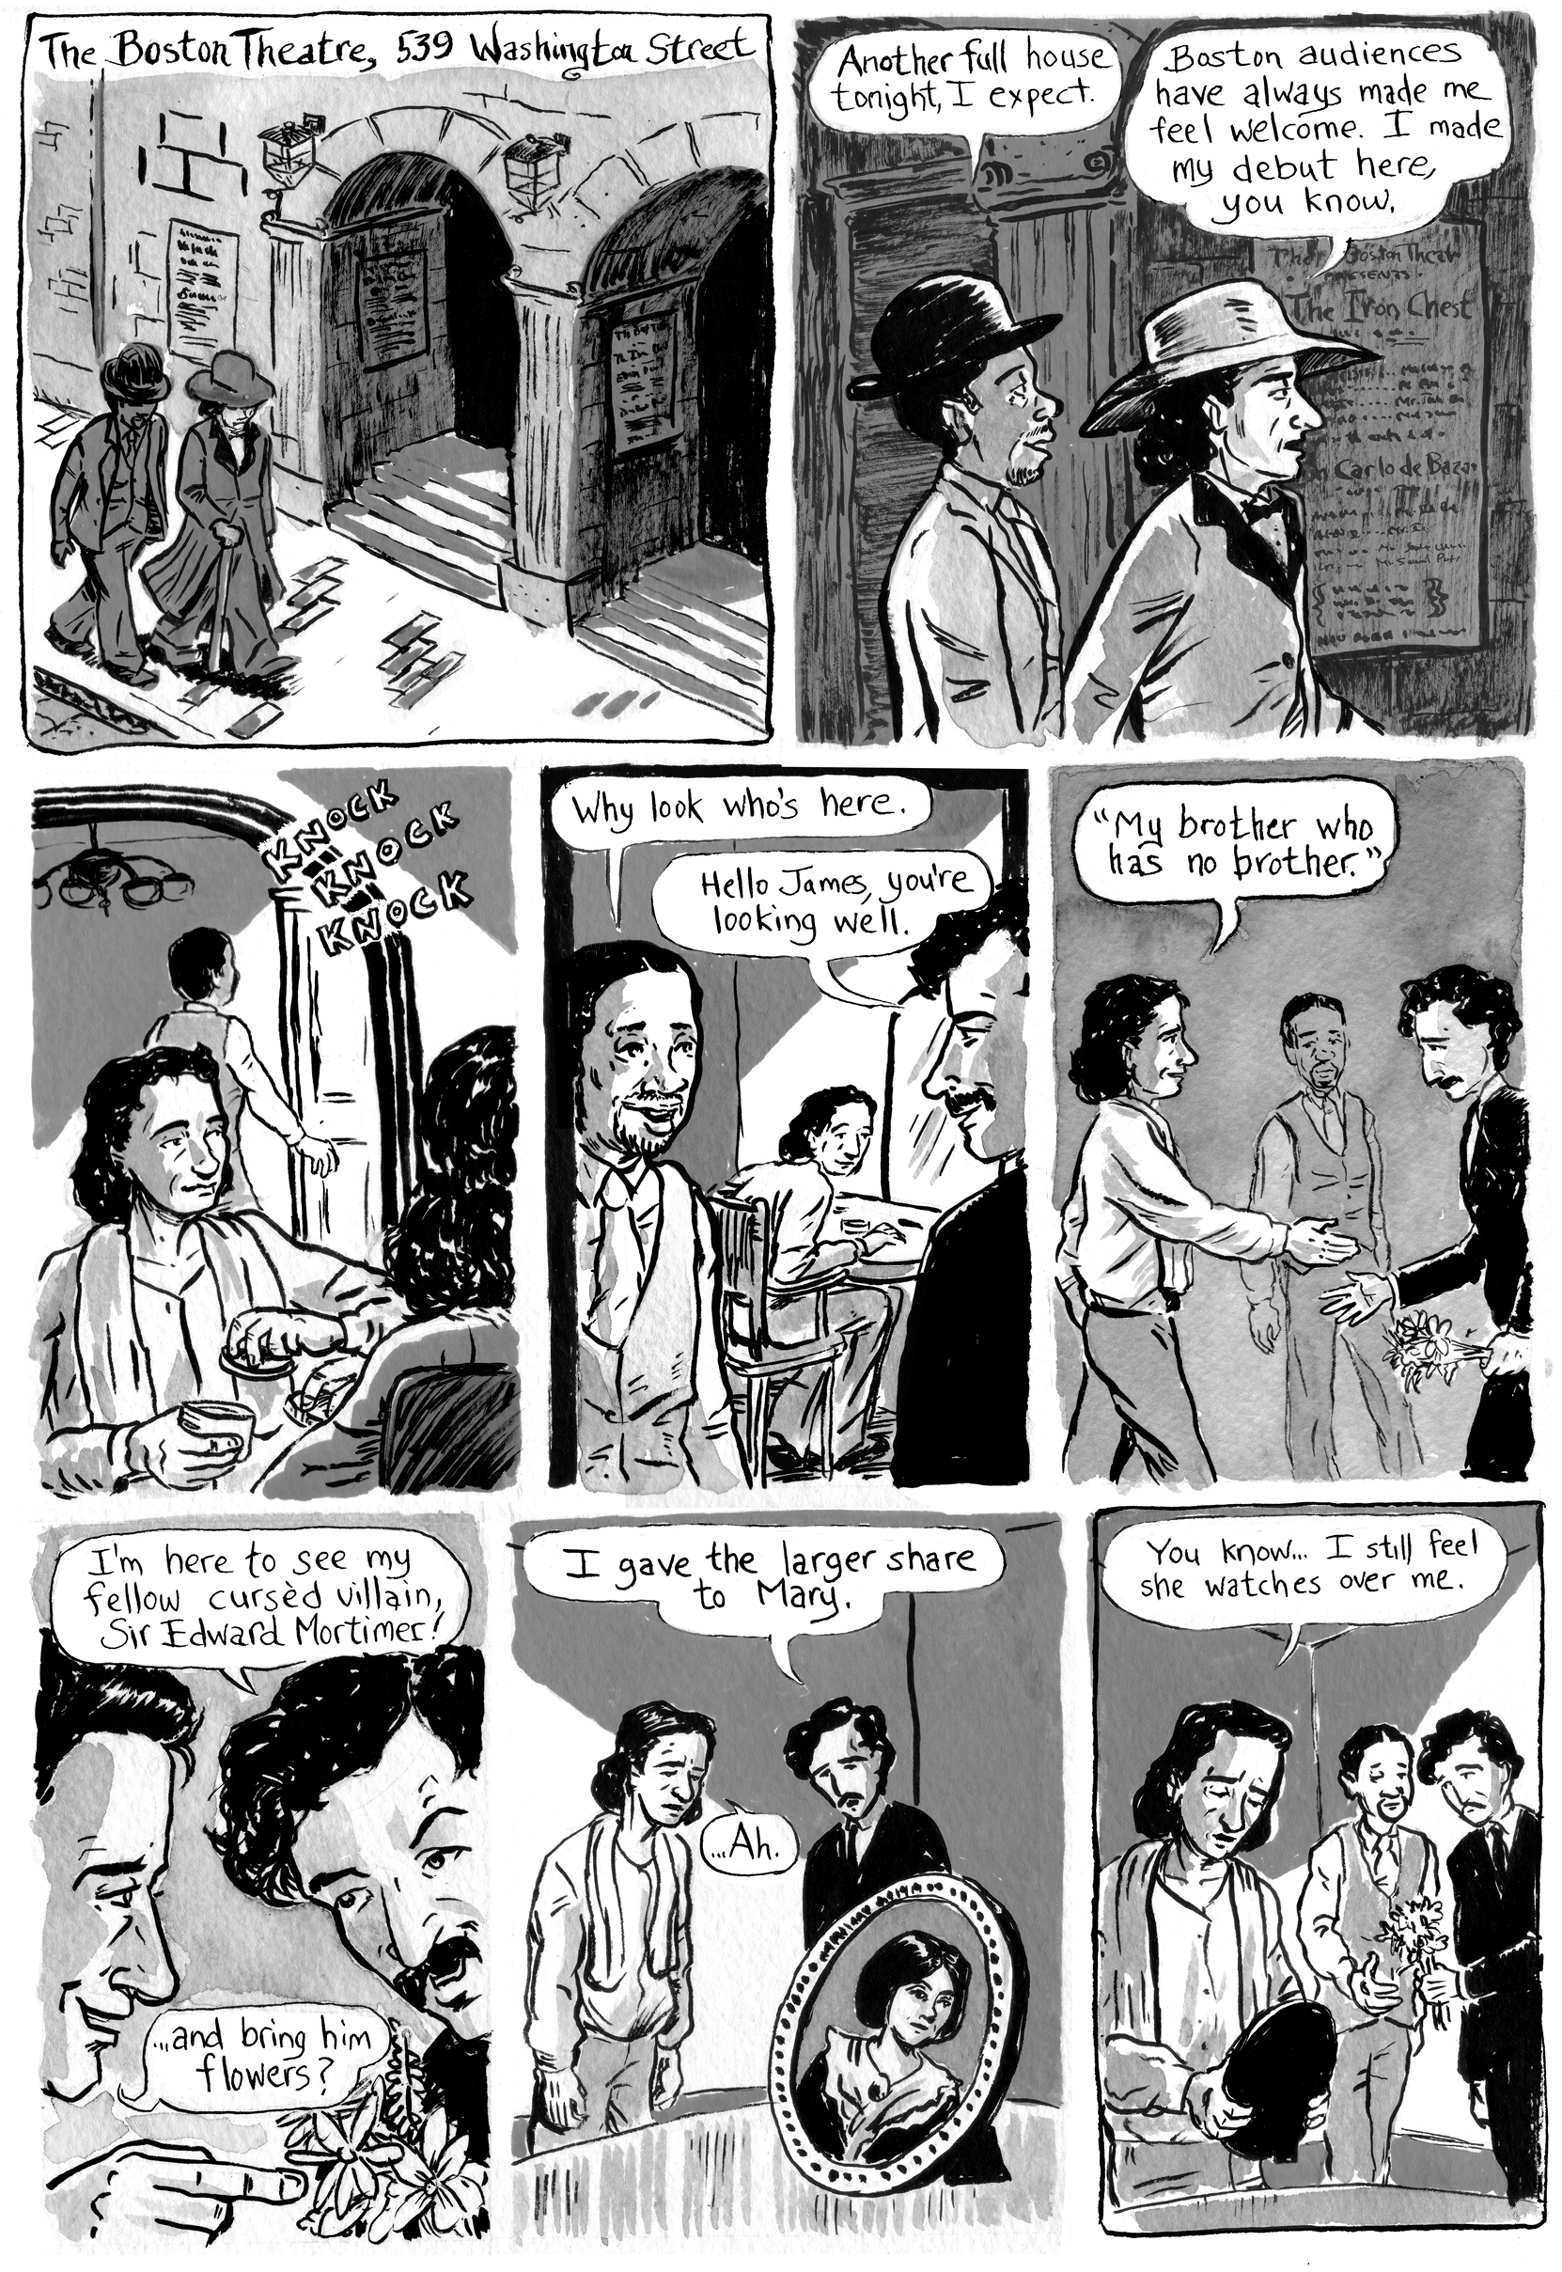 The Last Act, Page 2